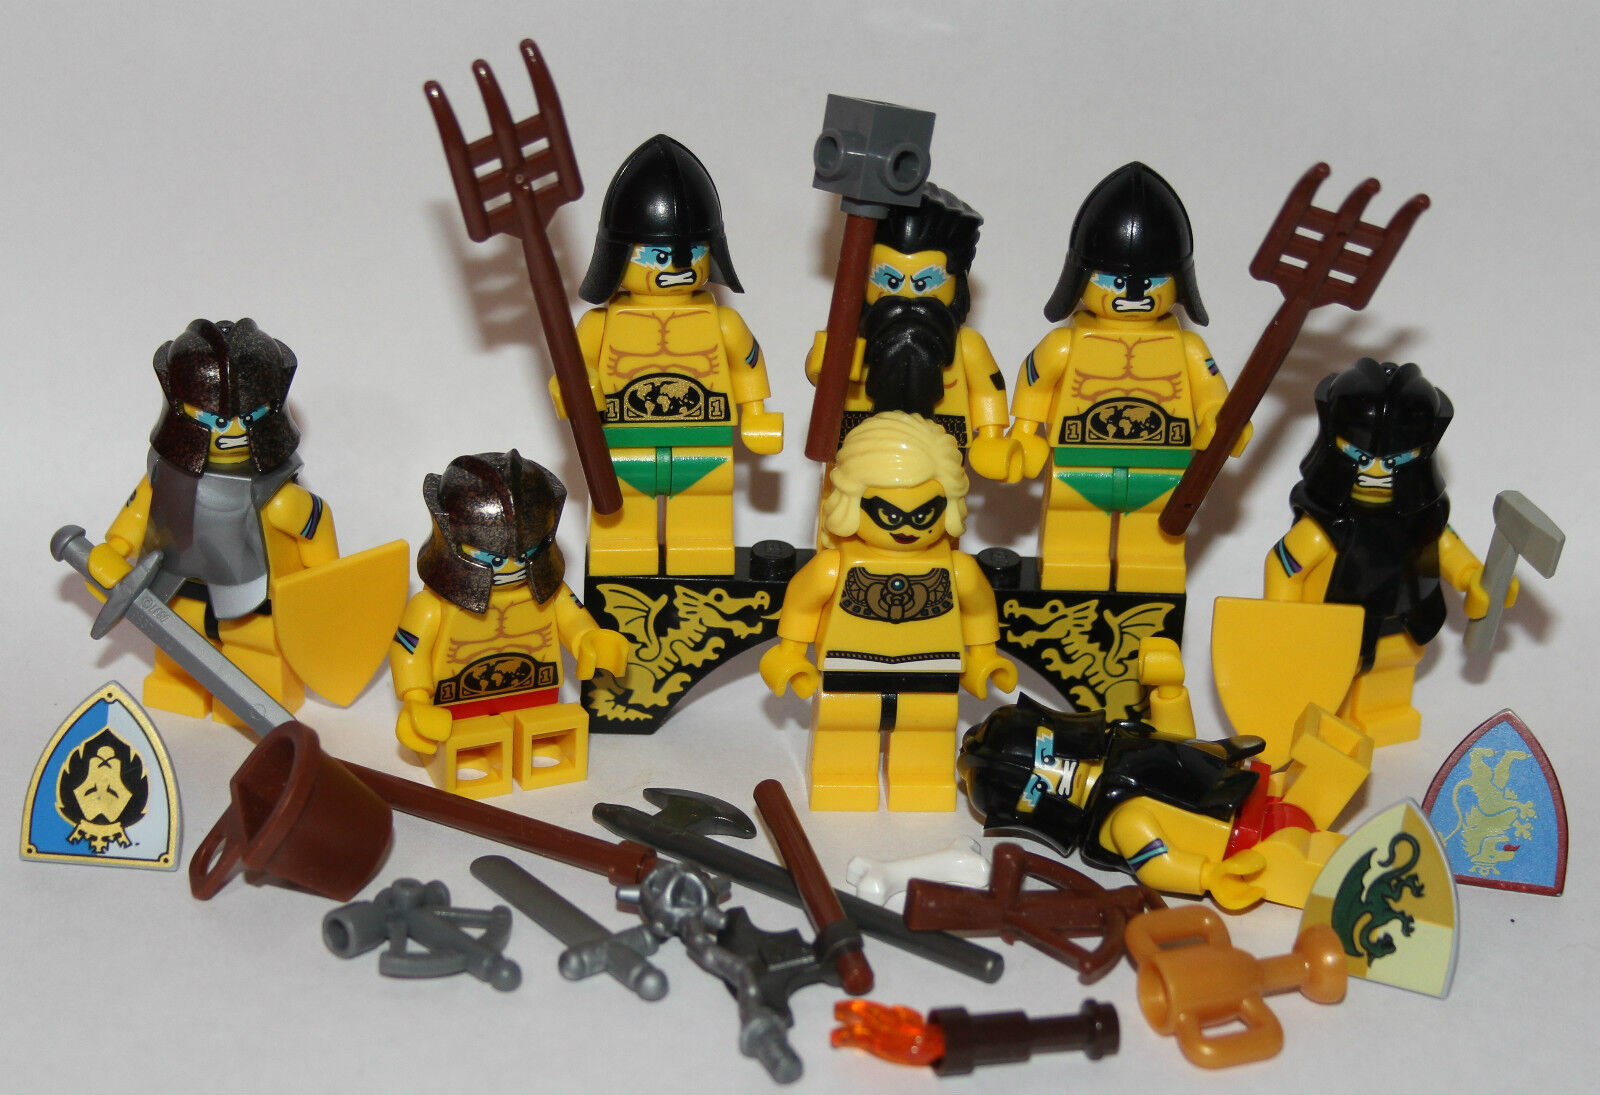 8 LEGO BARBARIANS ARMY + weapon - built using LEGO original parts ONLY